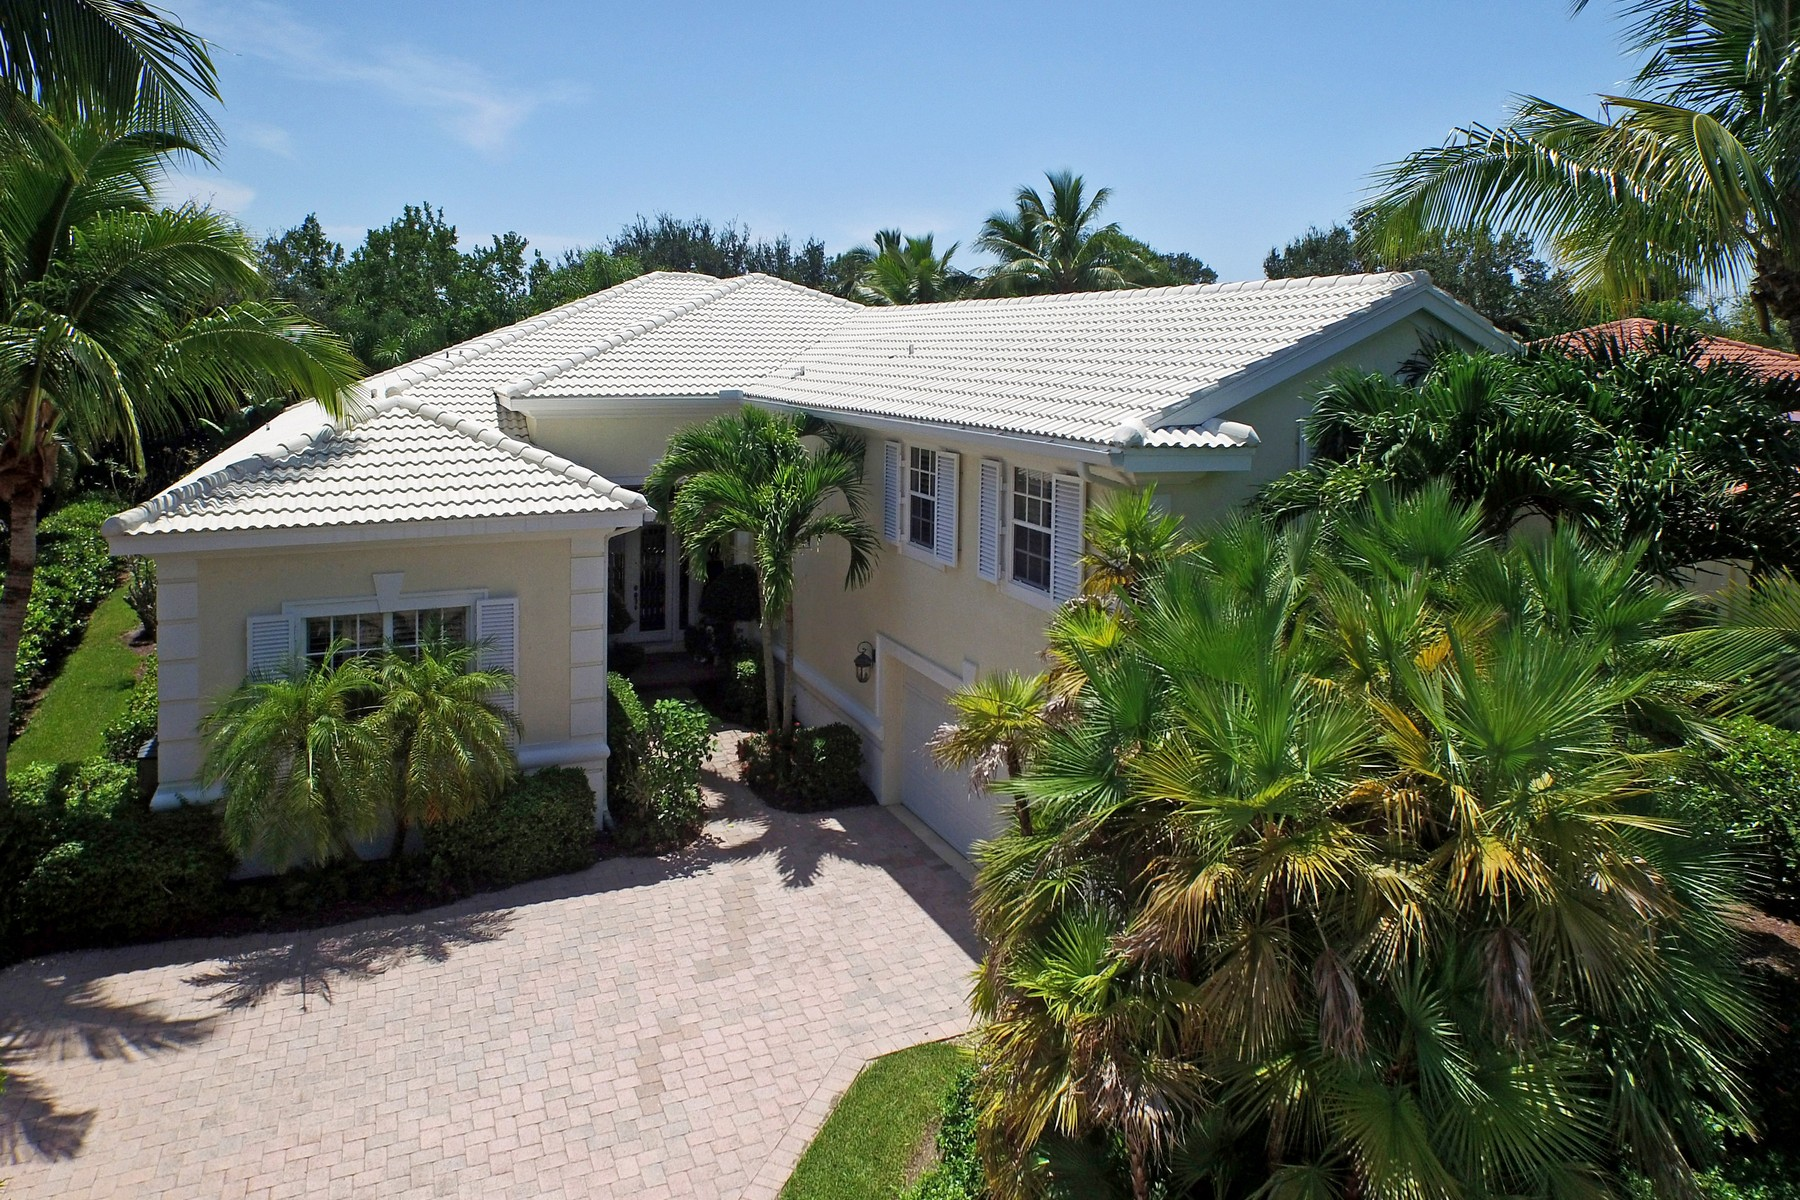 Single Family Homes for Sale at Exceptional Island Club Home 1373 West Island Club Square Vero Beach, Florida 32963 United States